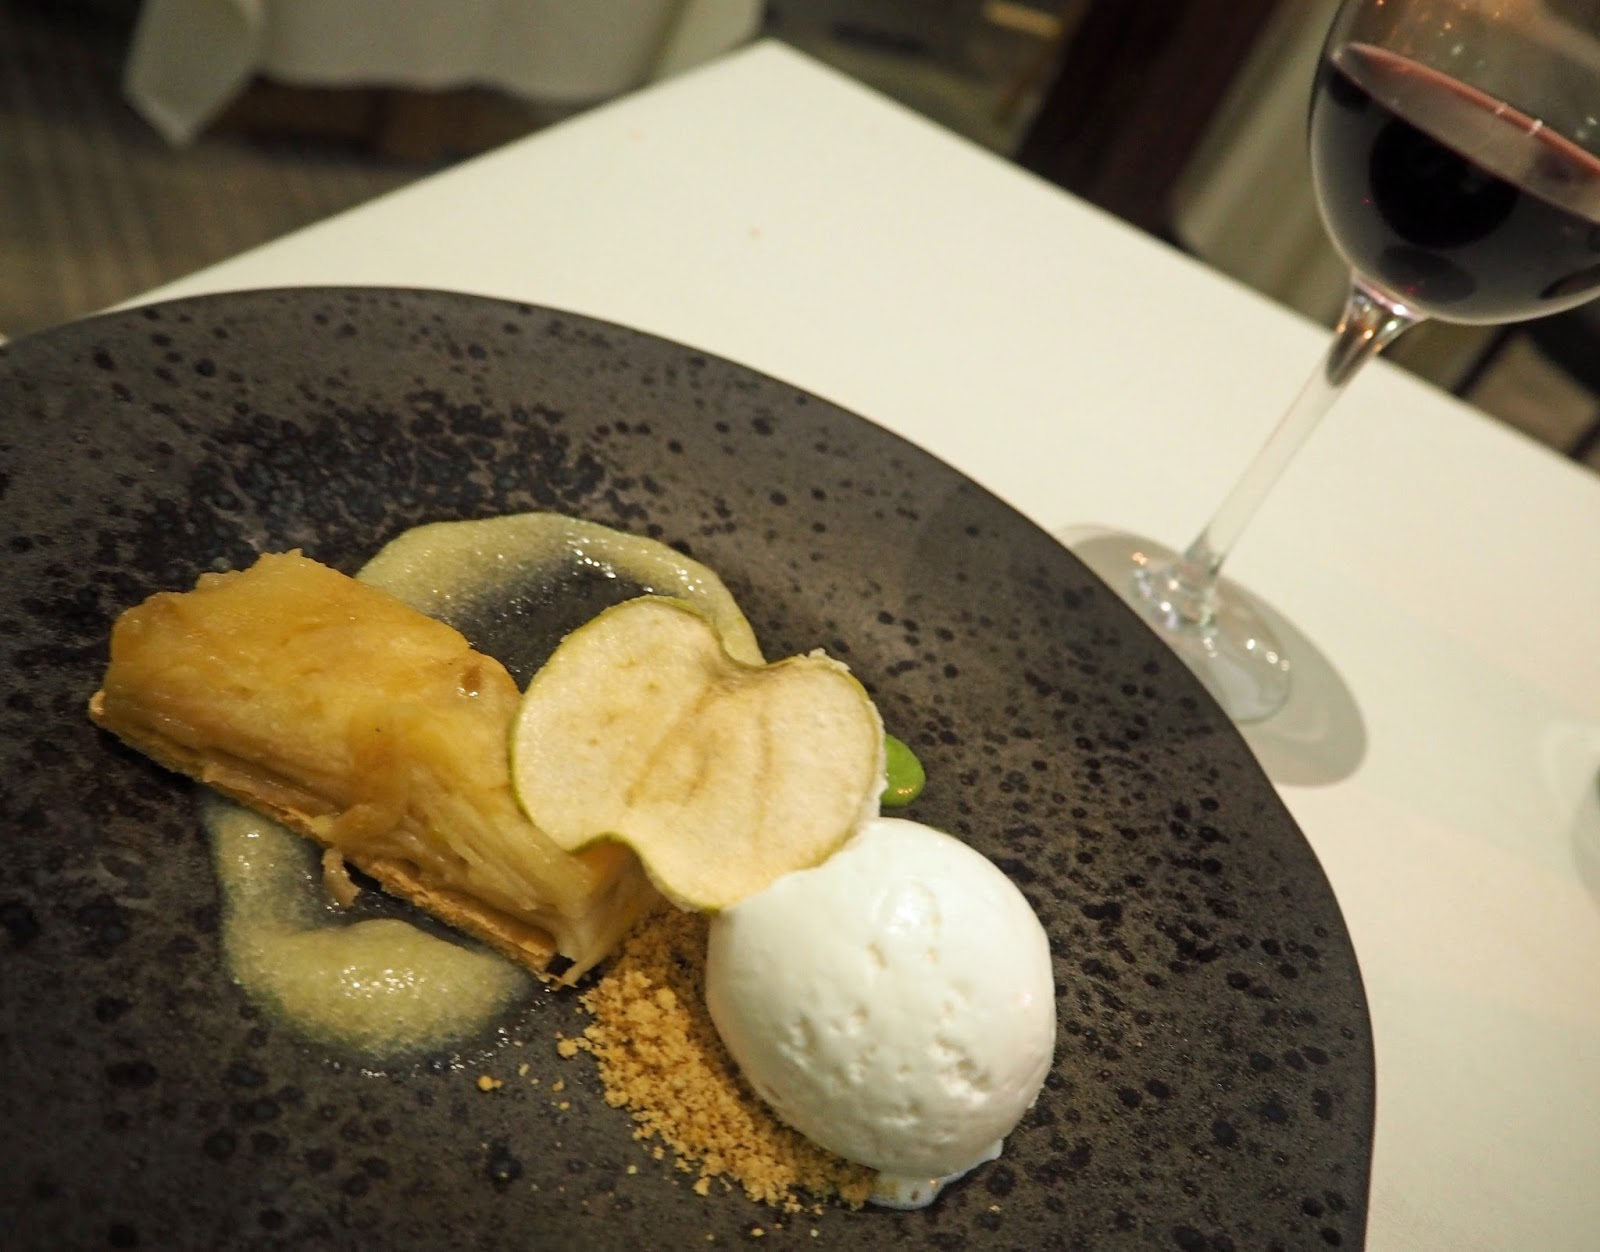 Review of Macleods restaurant, The Coniston Hotel, Skipton